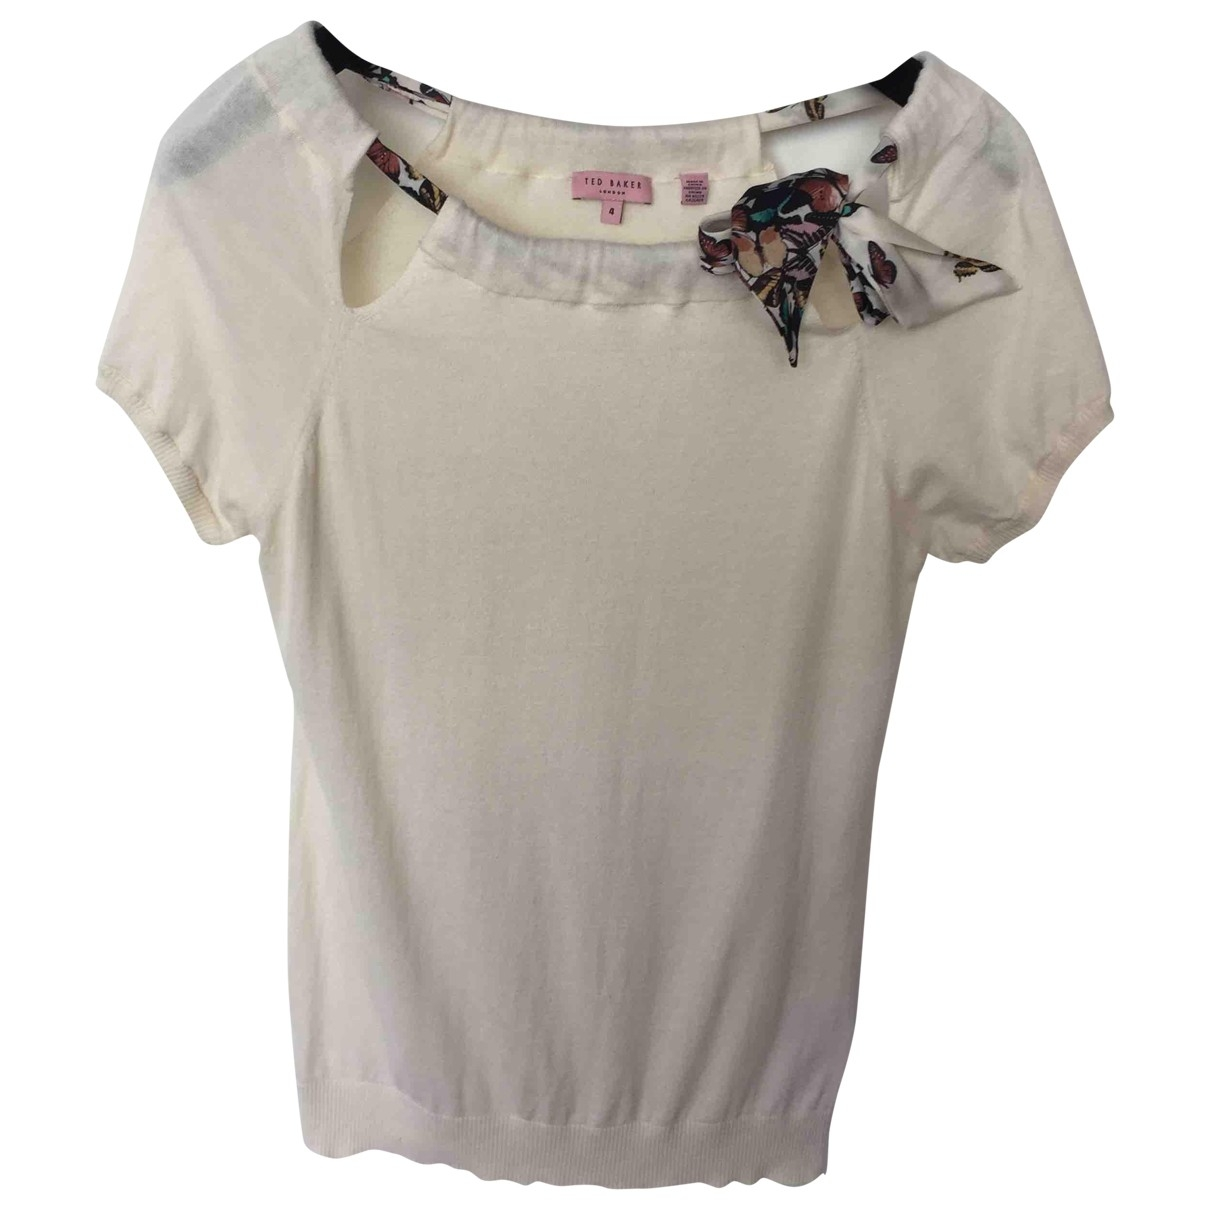 Ted Baker \N Beige Cotton Knitwear for Women 4 0-5